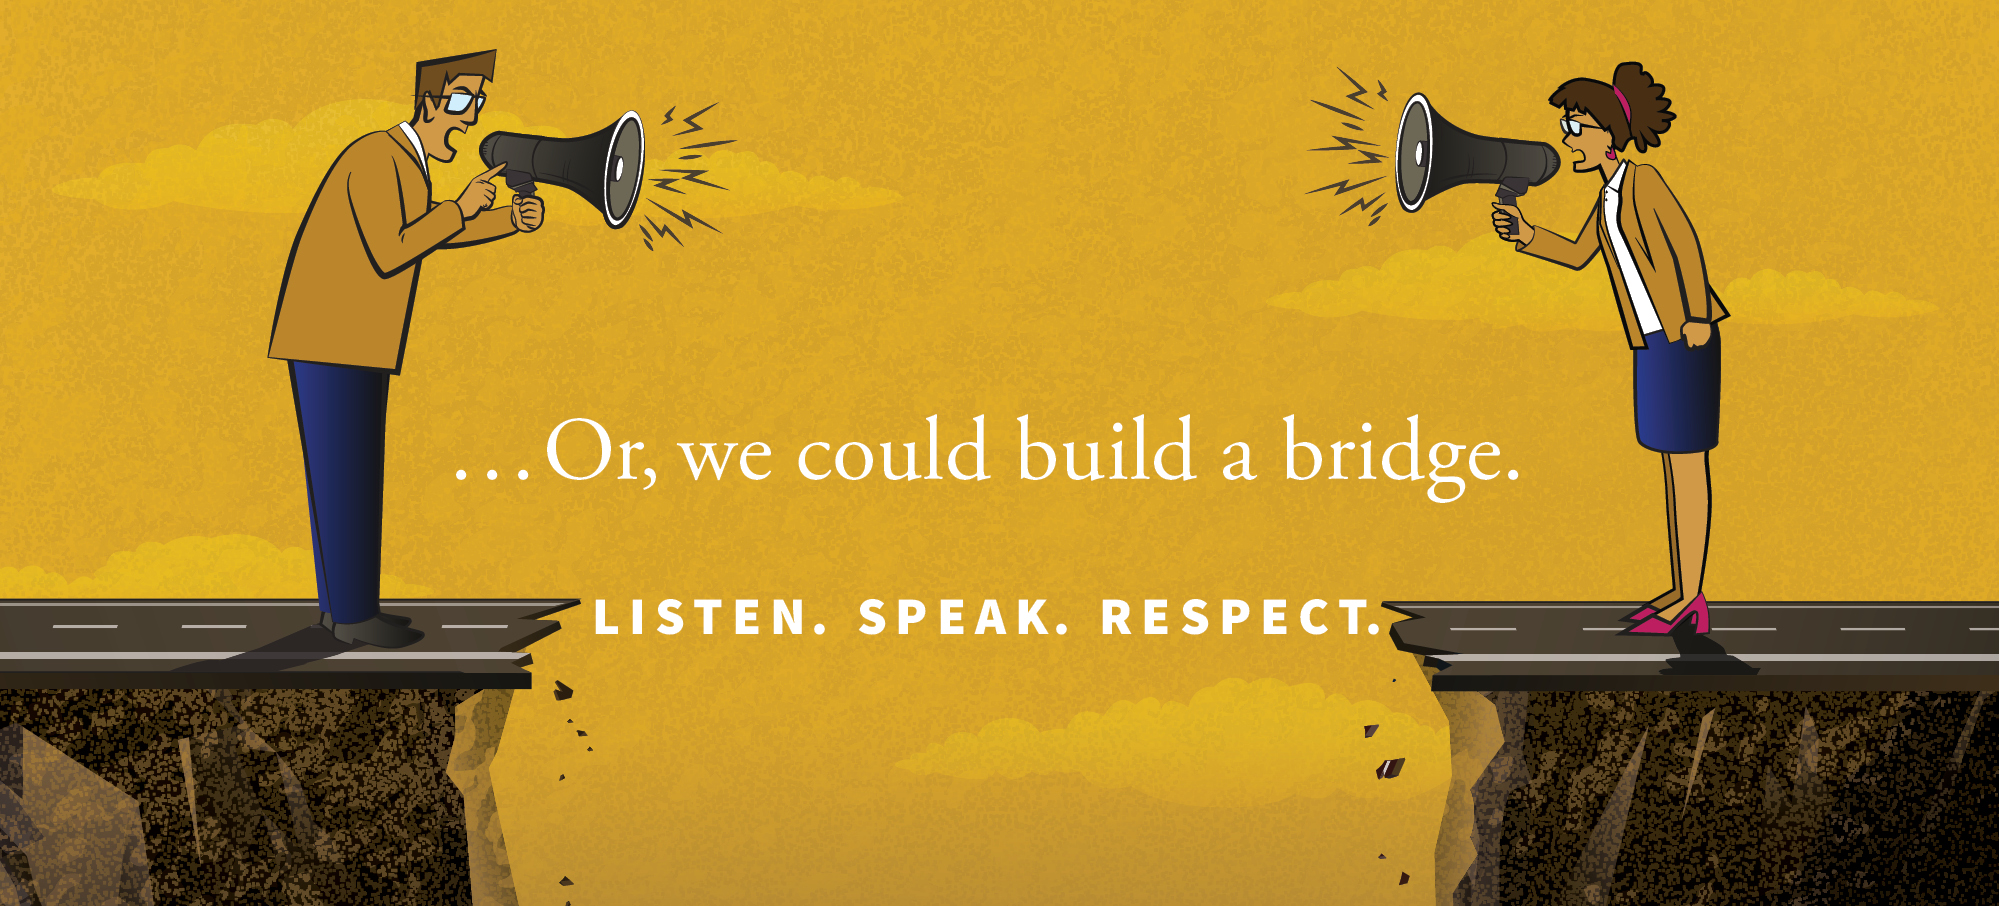 "Graphic showing people shouting at each other with bullhorns across a divide. Text on it says ""... or we could build a bridge. Listen. Speak. Respect."""